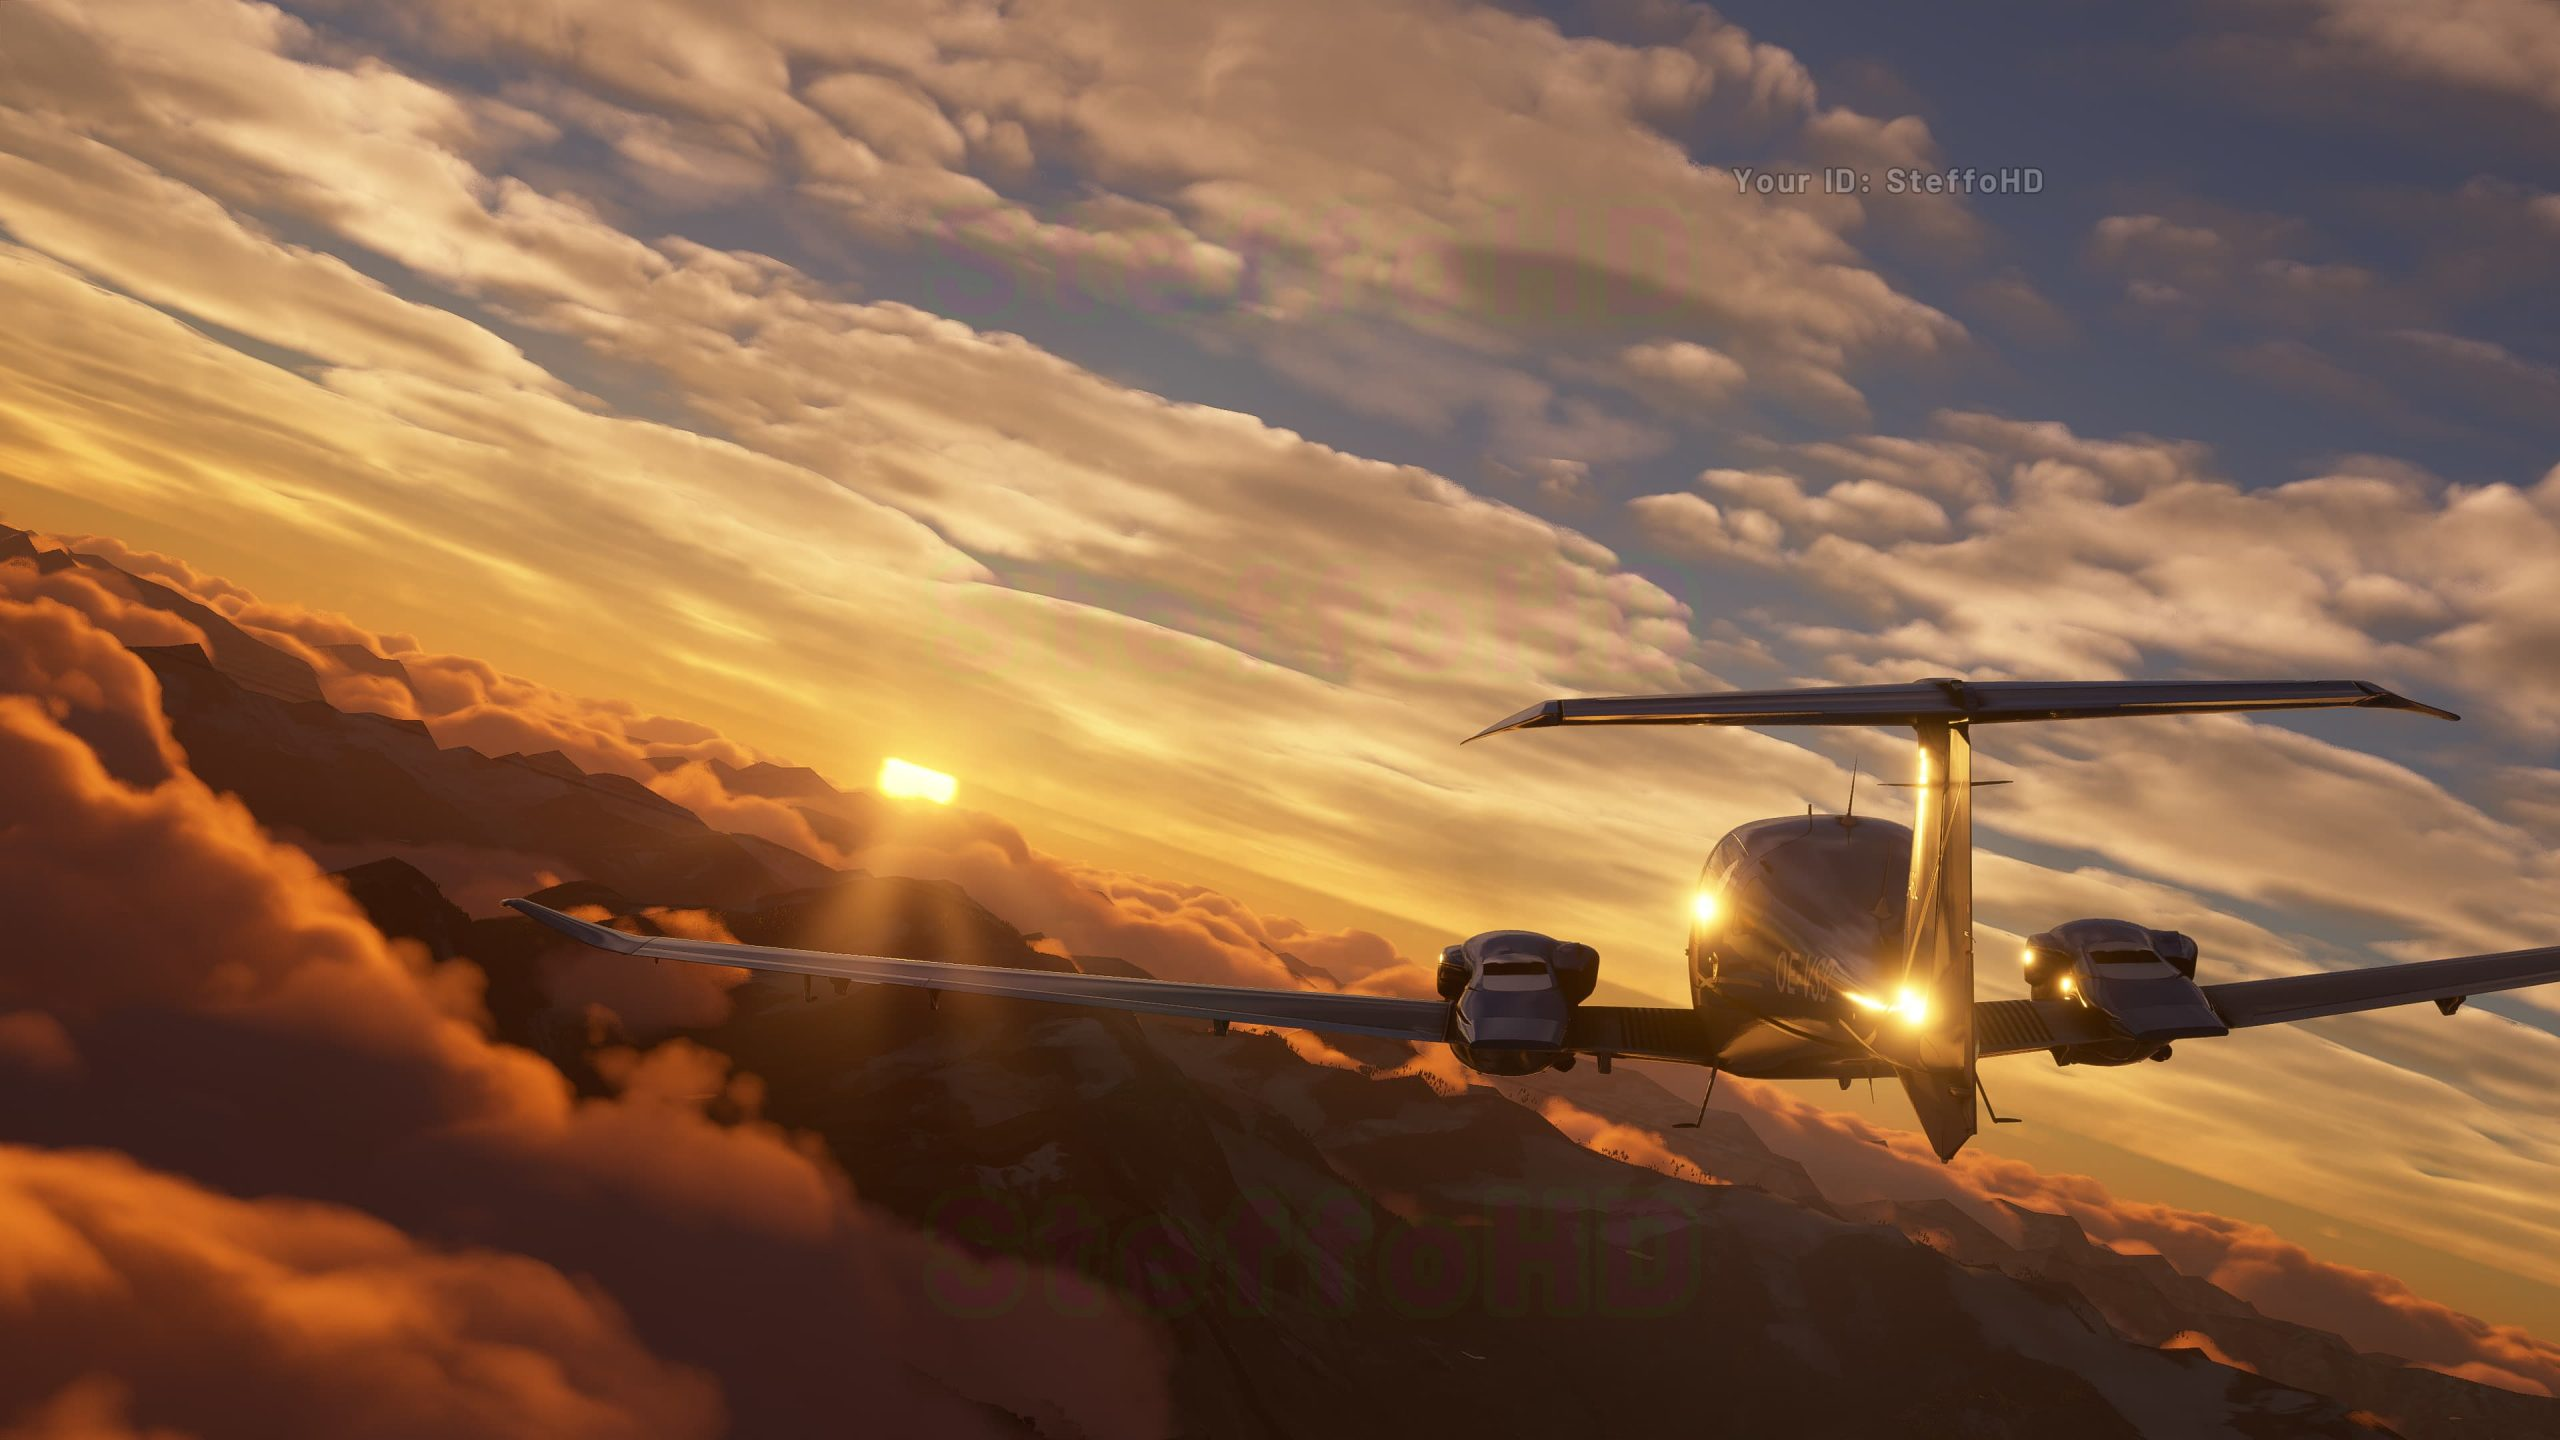 Microsoft Flight Simulator 2020 system requirements - minimum and recommended specs | Gamepur